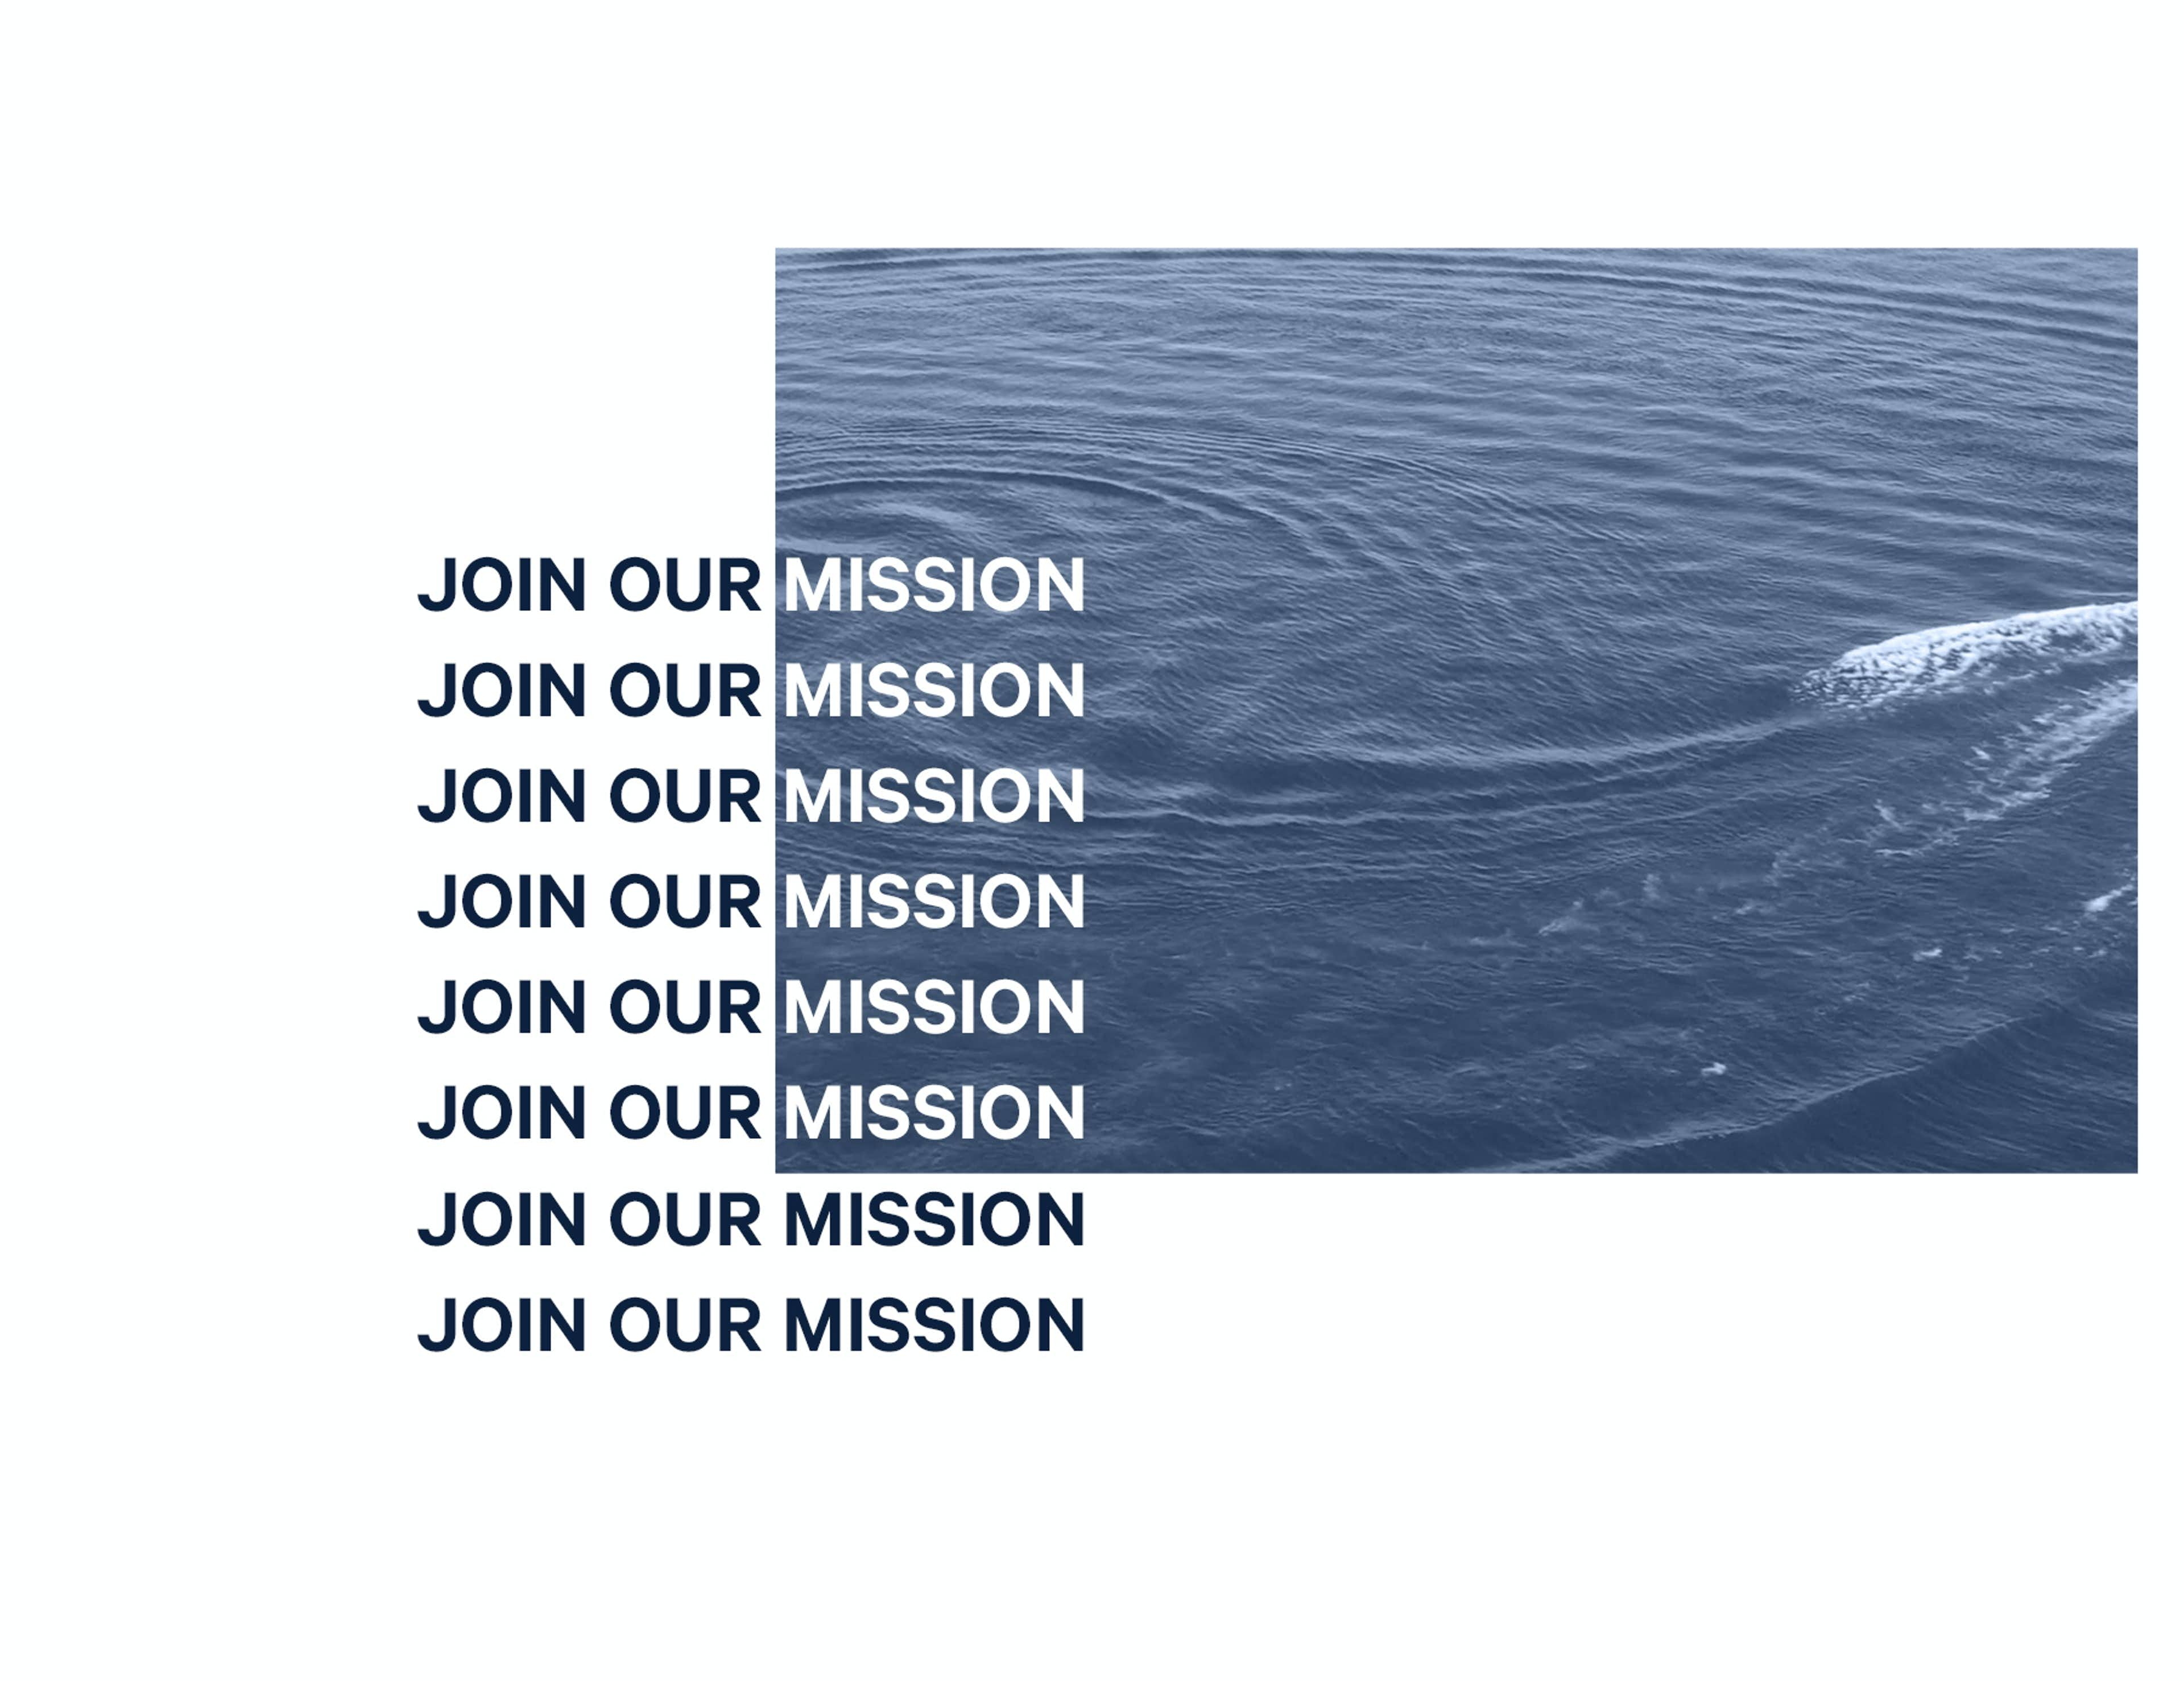 join our mission